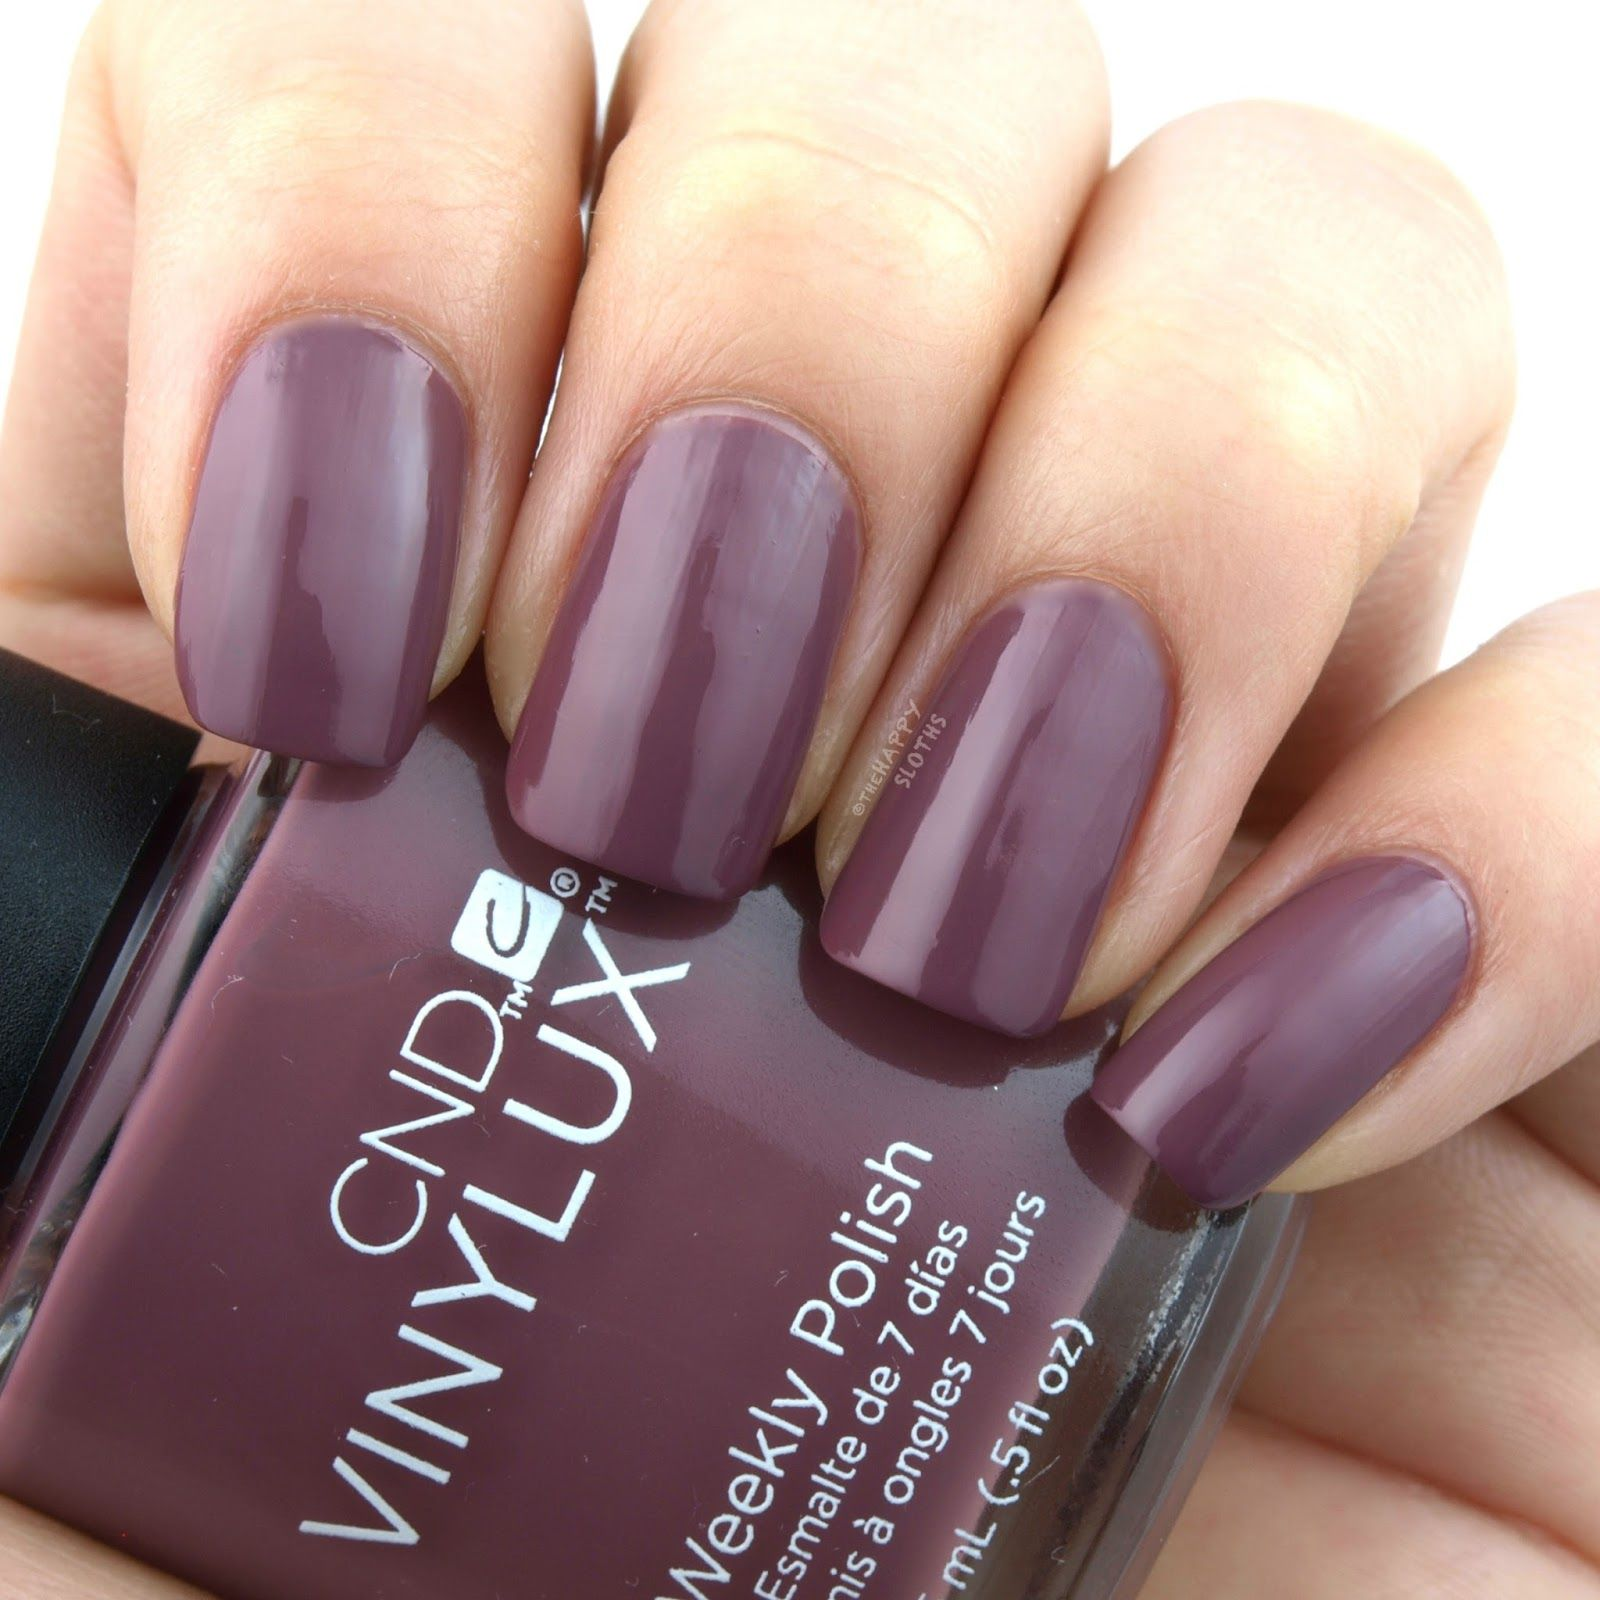 CND Vinylux Intimates Collection: Review and Swatches